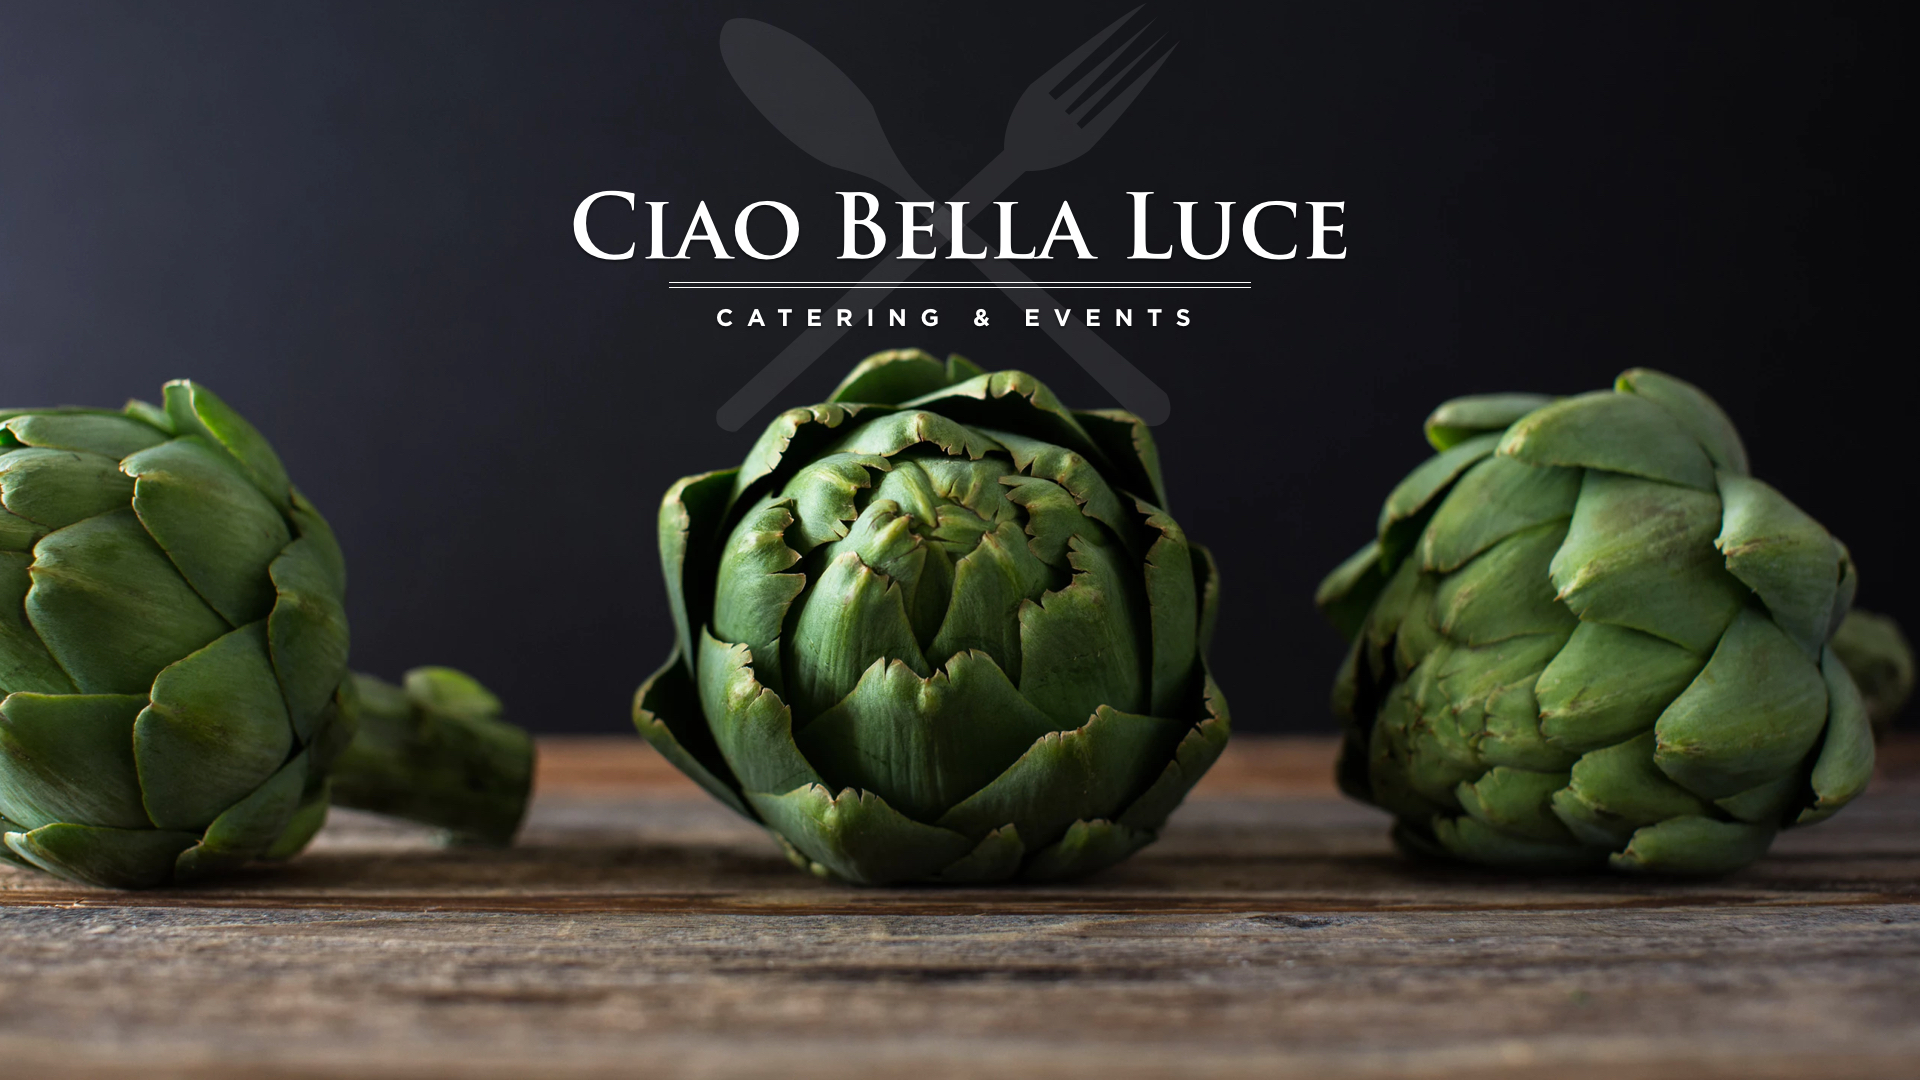 Identity Design - Ciao Bella Luce Catering & Events needed a new look to go after a big new account.